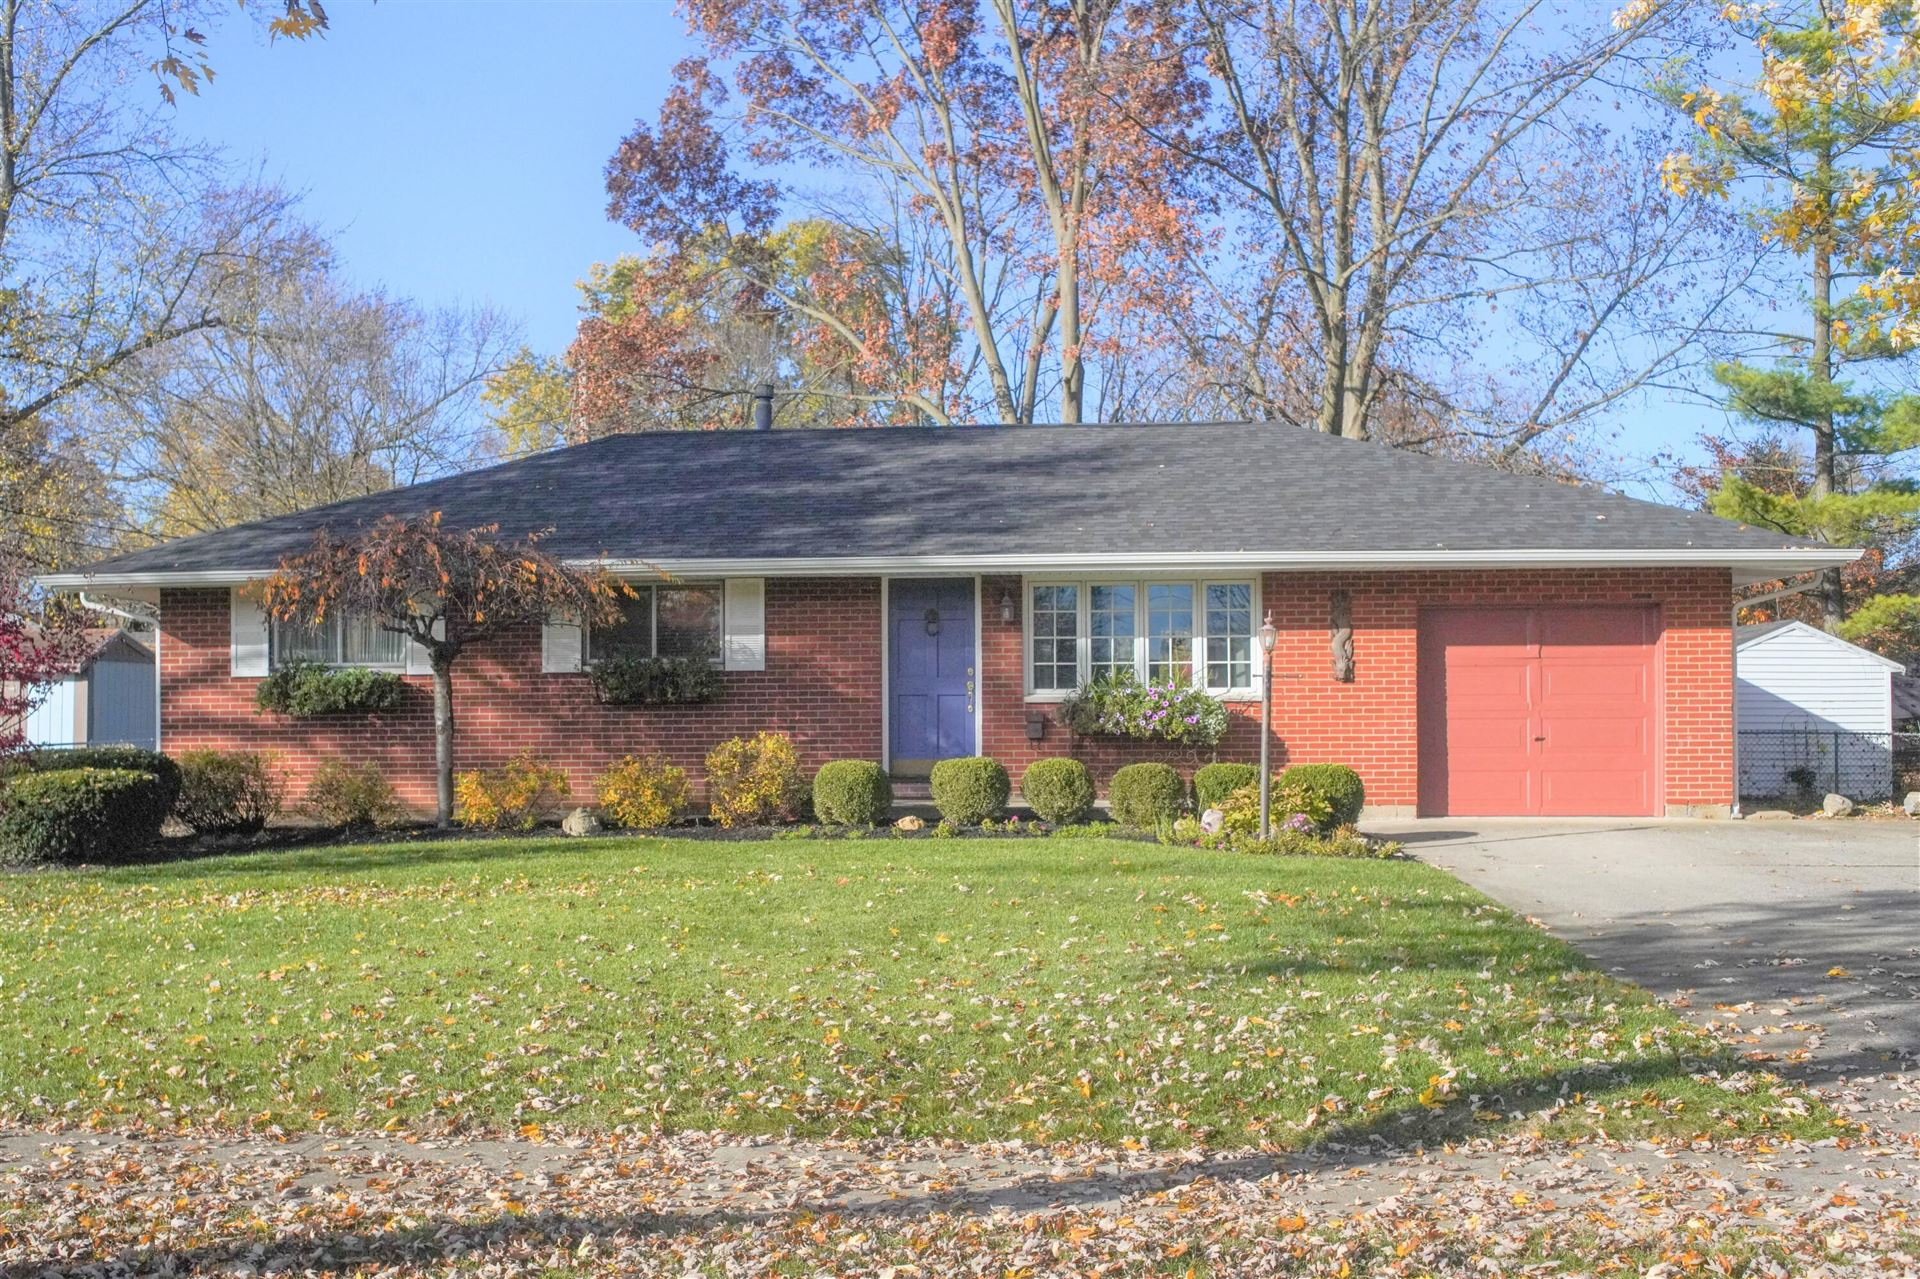 Photo of 445 Potawatomi Drive, Westerville, OH 43081 (MLS # 221036332)